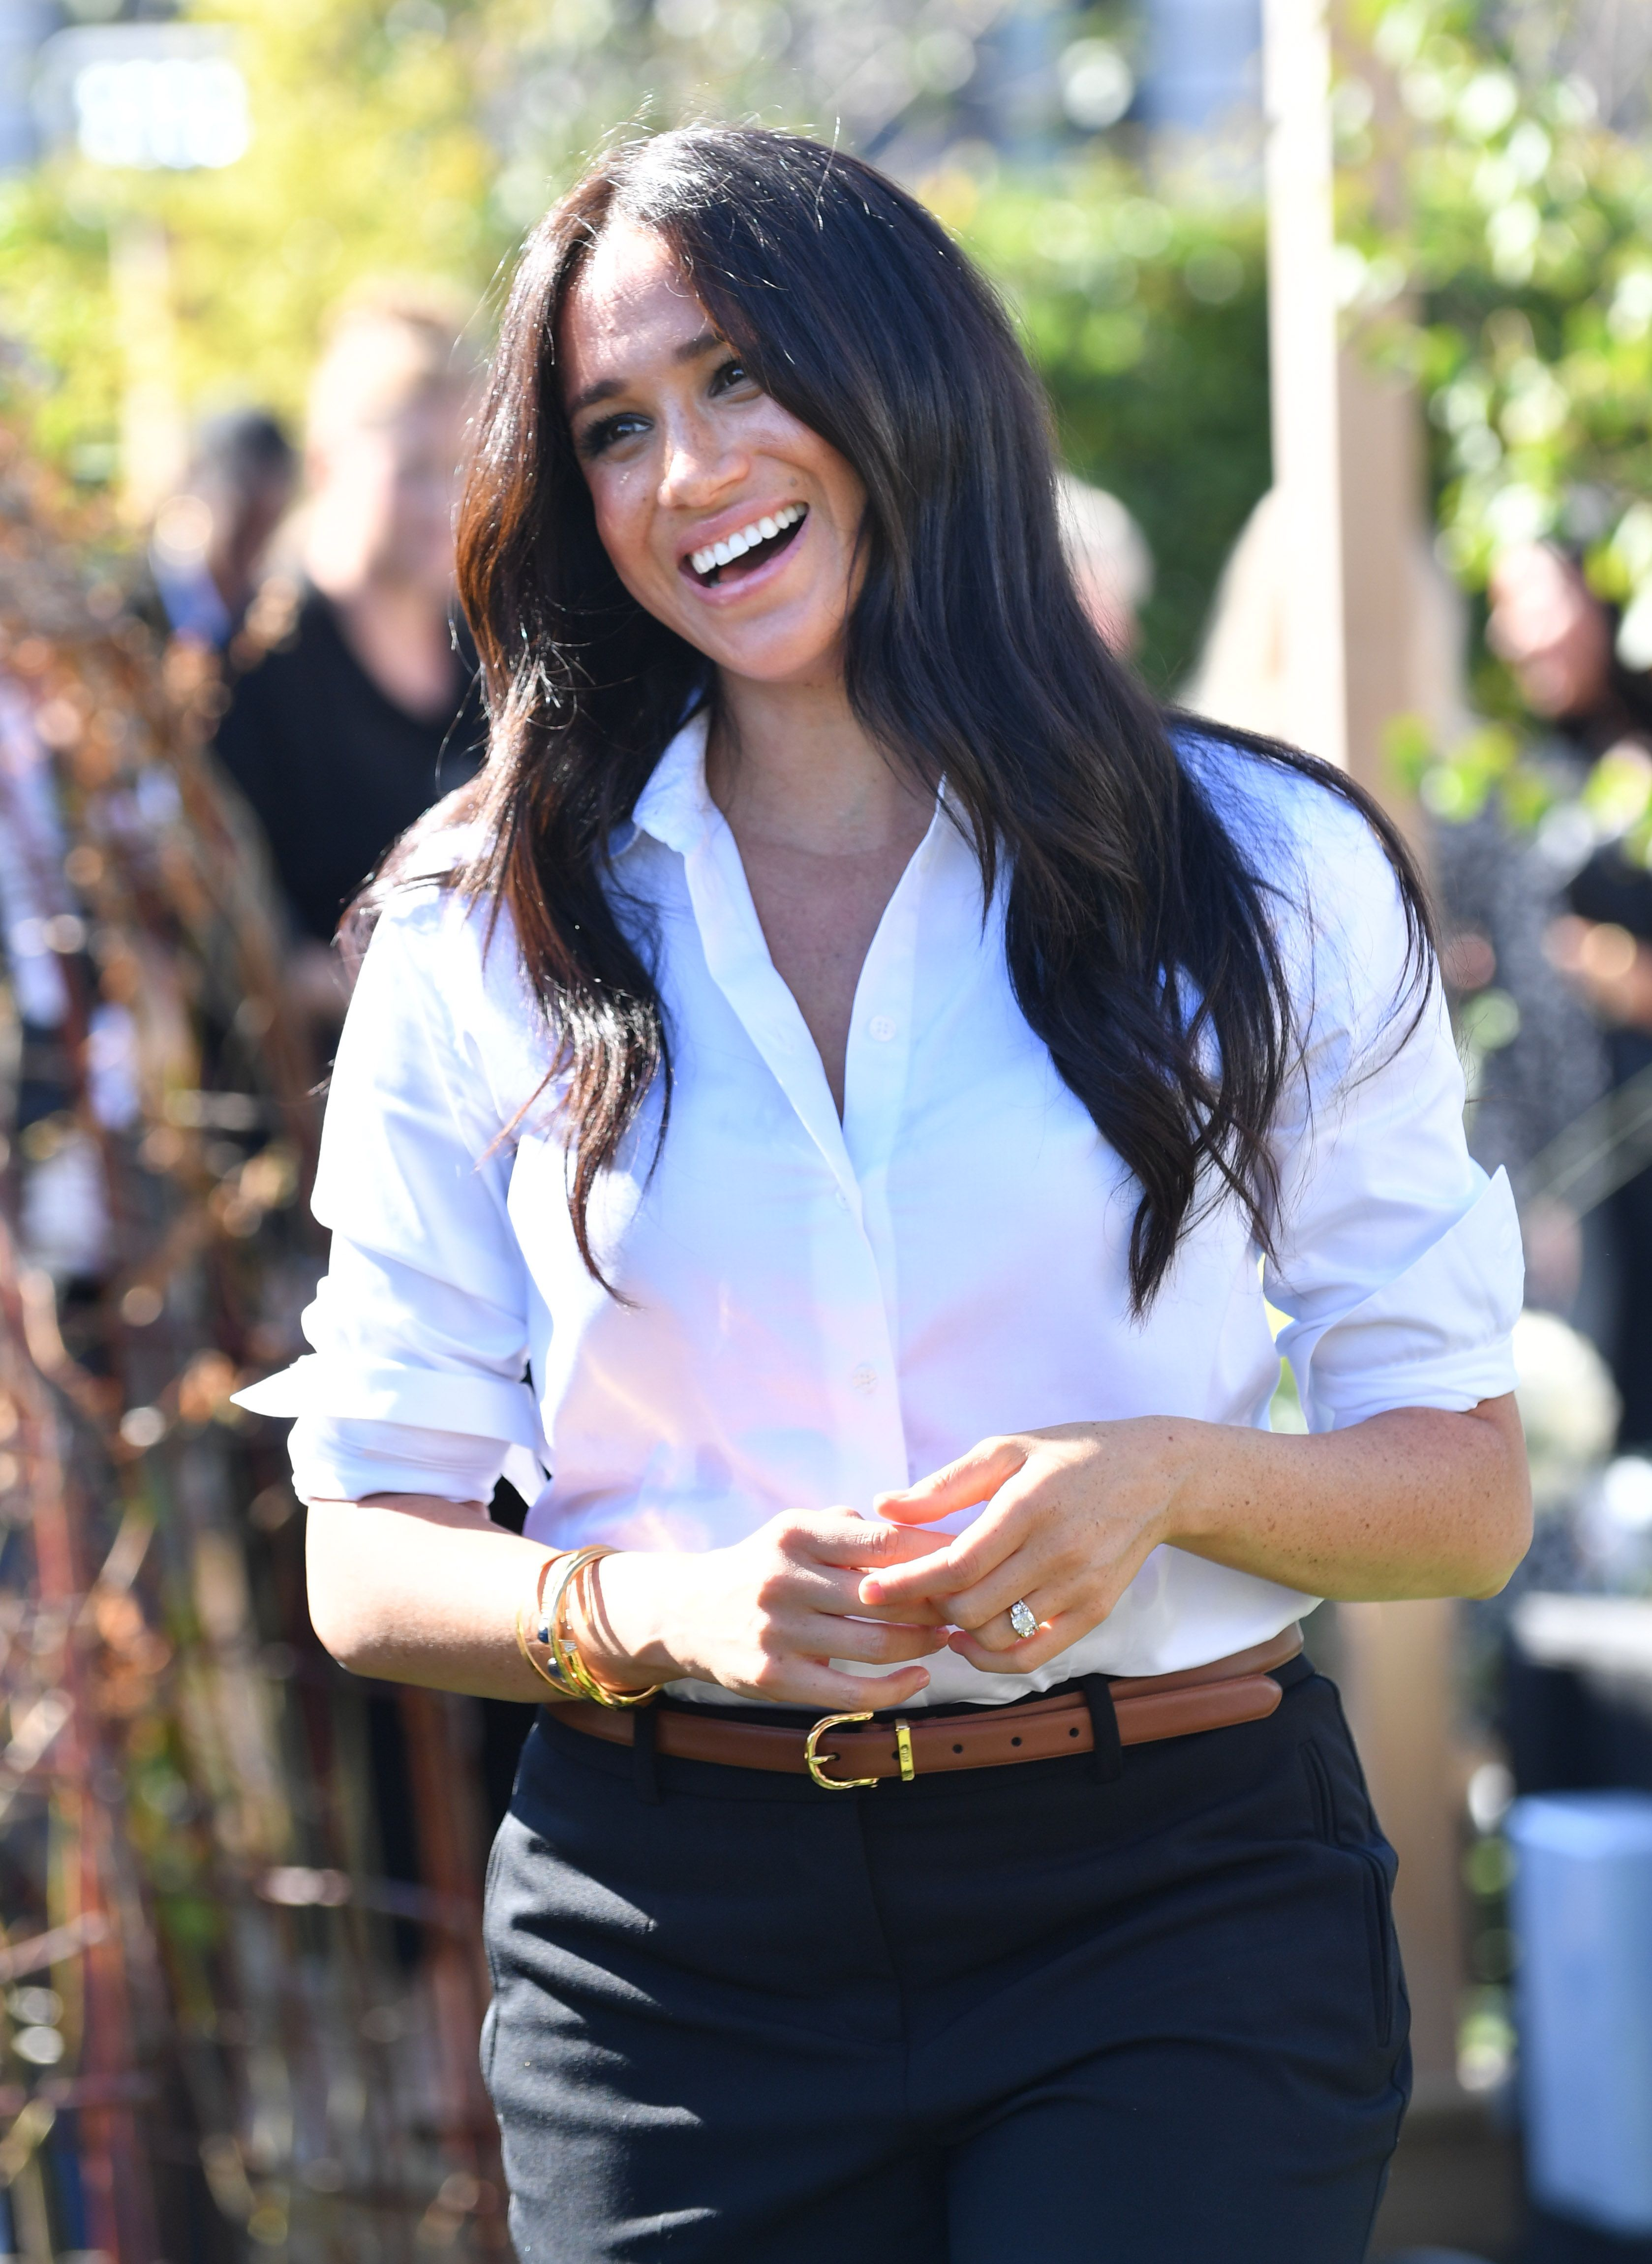 Here Are Never-Before-Seen Photos of Meghan Markle at Her Smart Works Collection Shoot